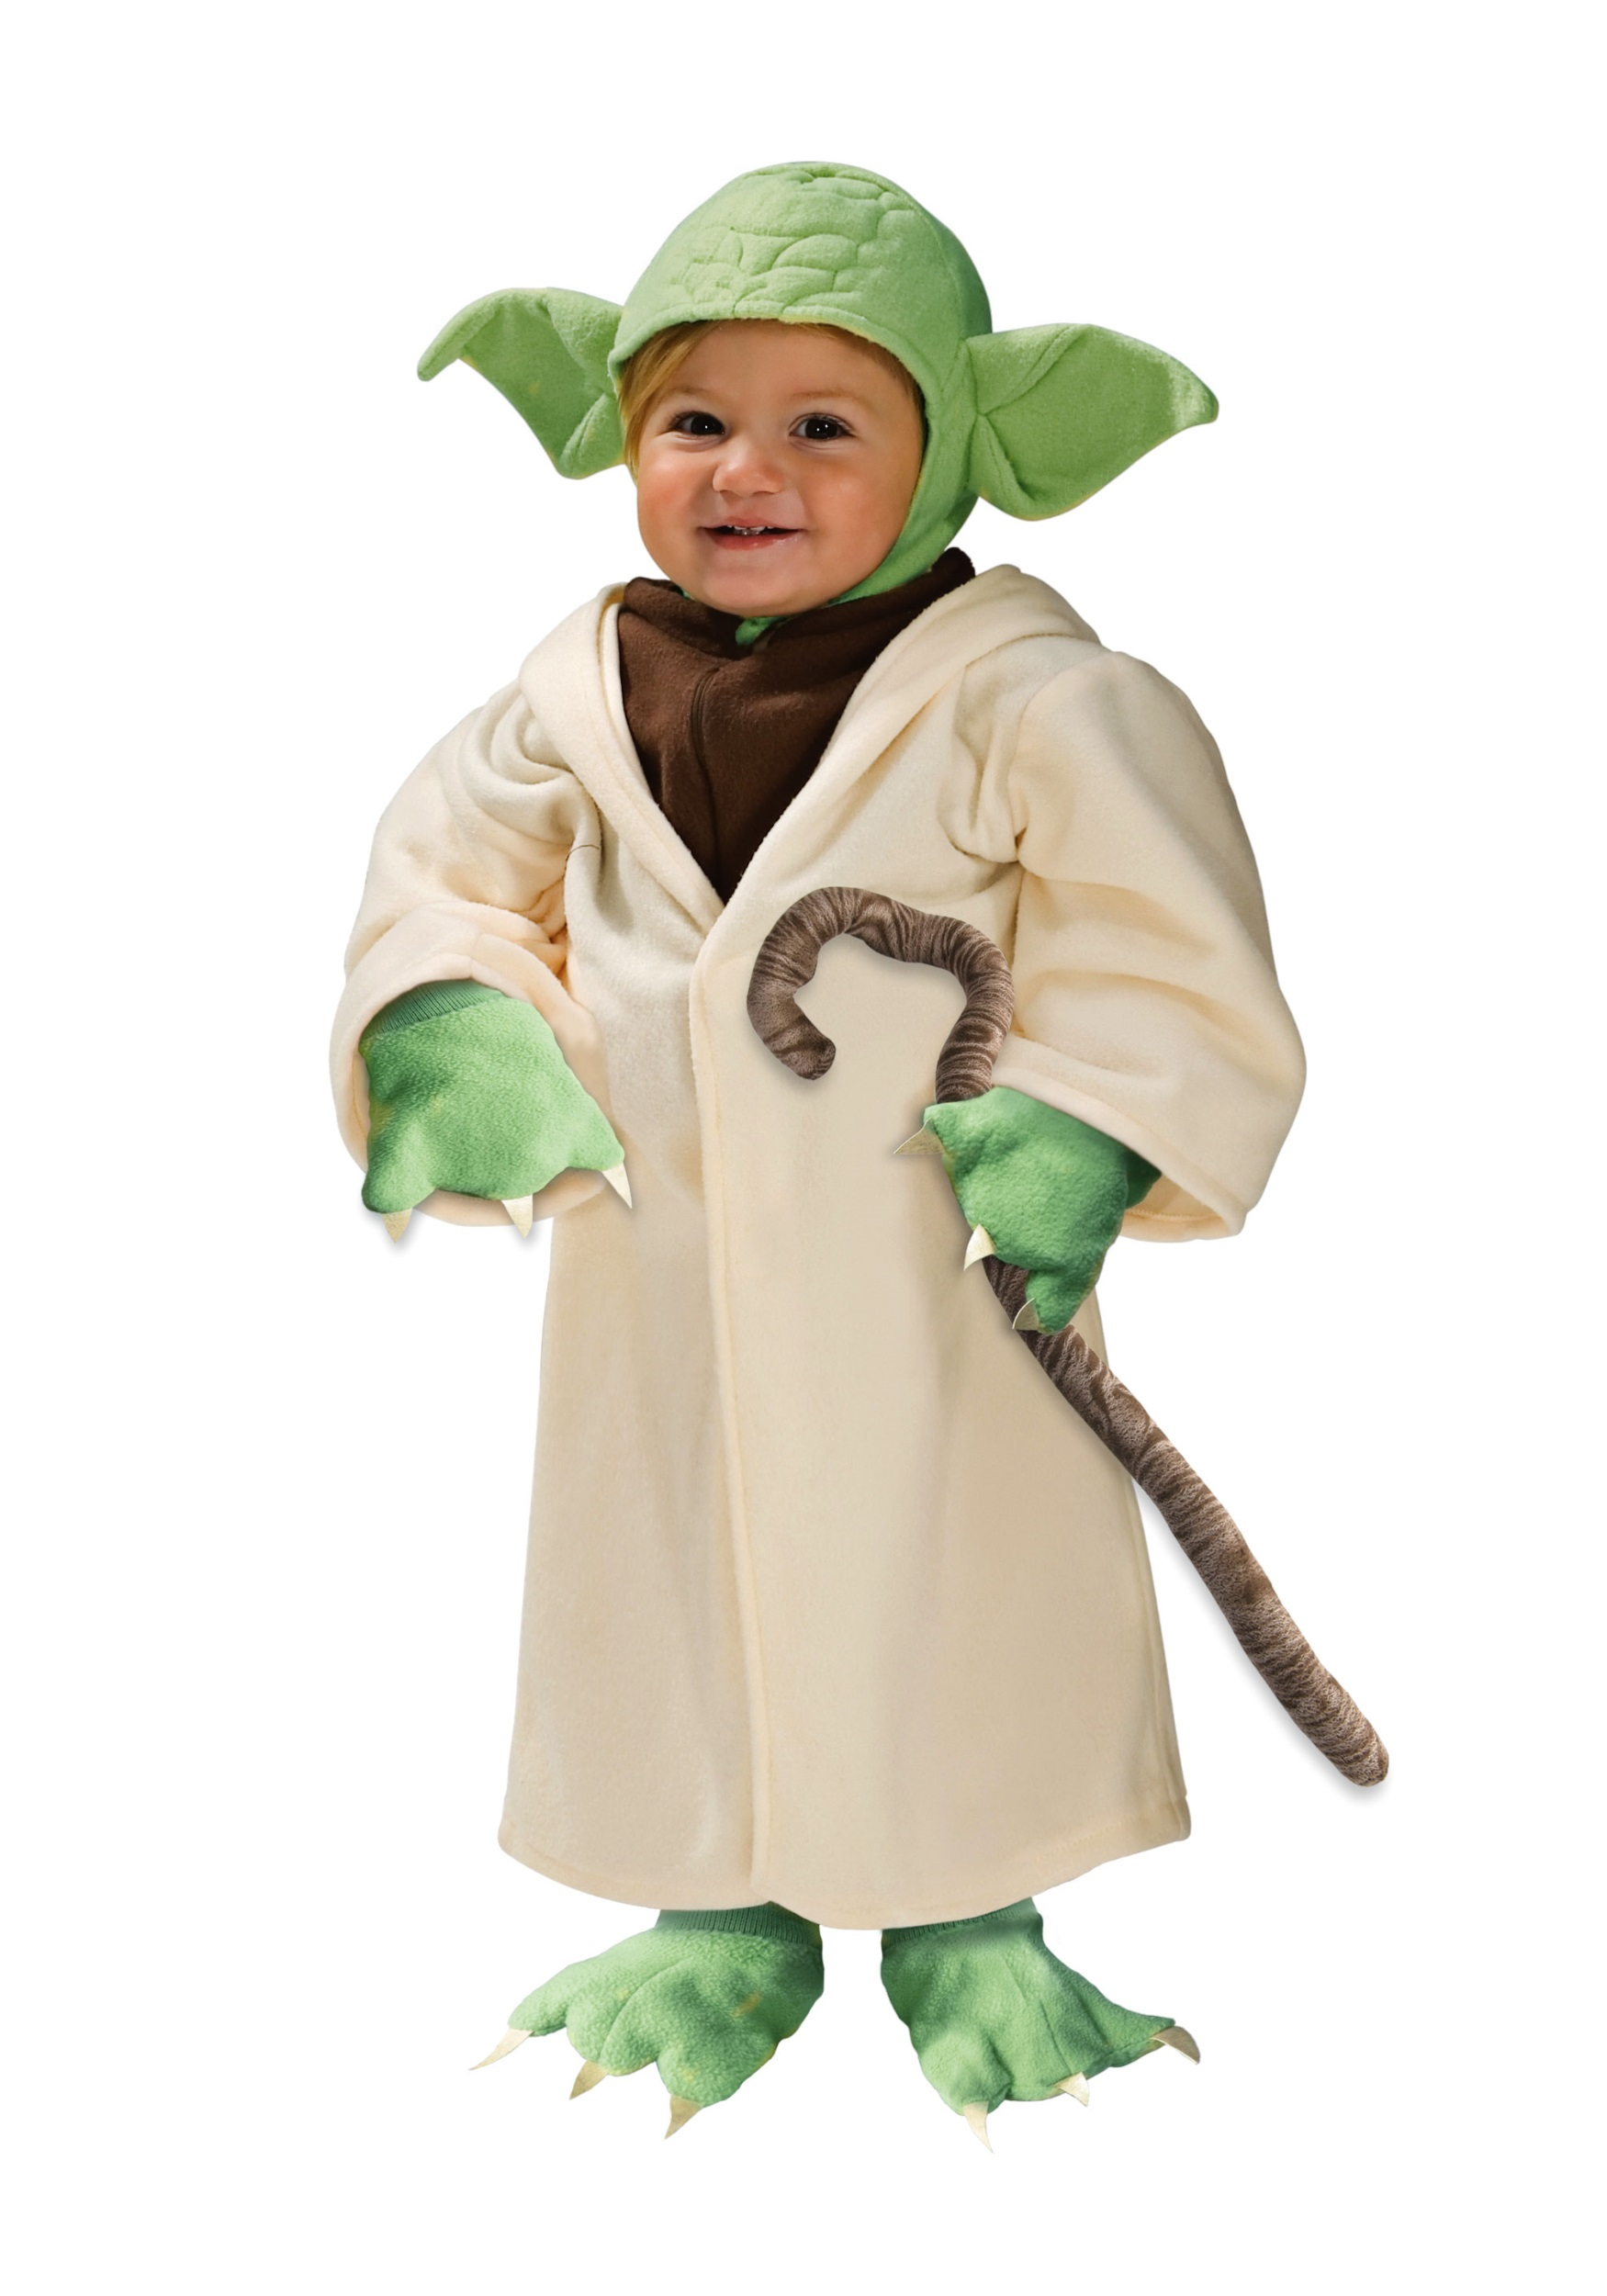 Star wars costumes halloweencostumes toddler yoda costume solutioingenieria Gallery